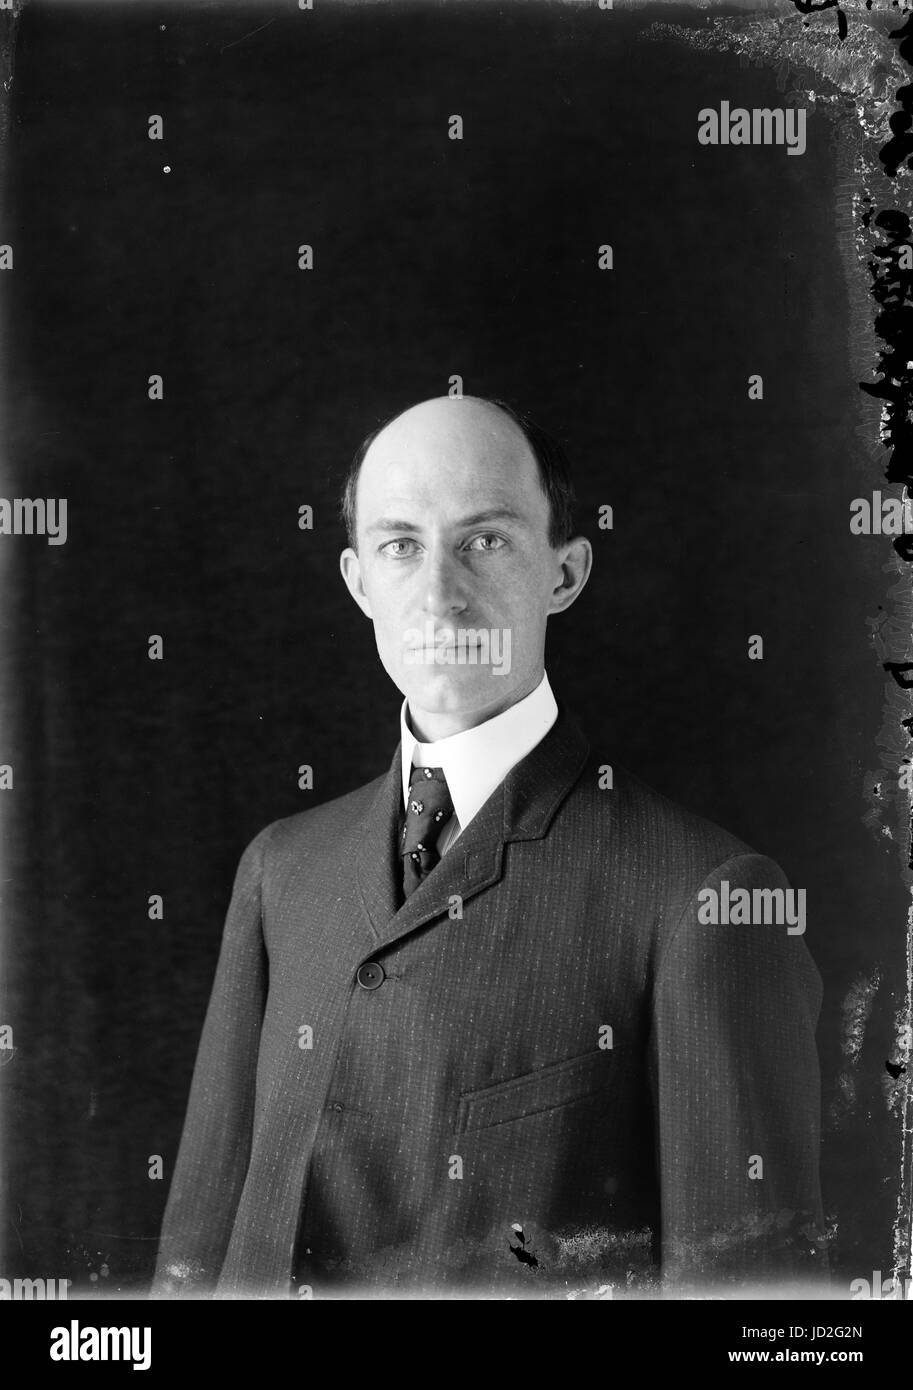 Wilbur Wright, age 38, head and shoulders, about 1905; one of the earliest published photographs of him. - Stock Image